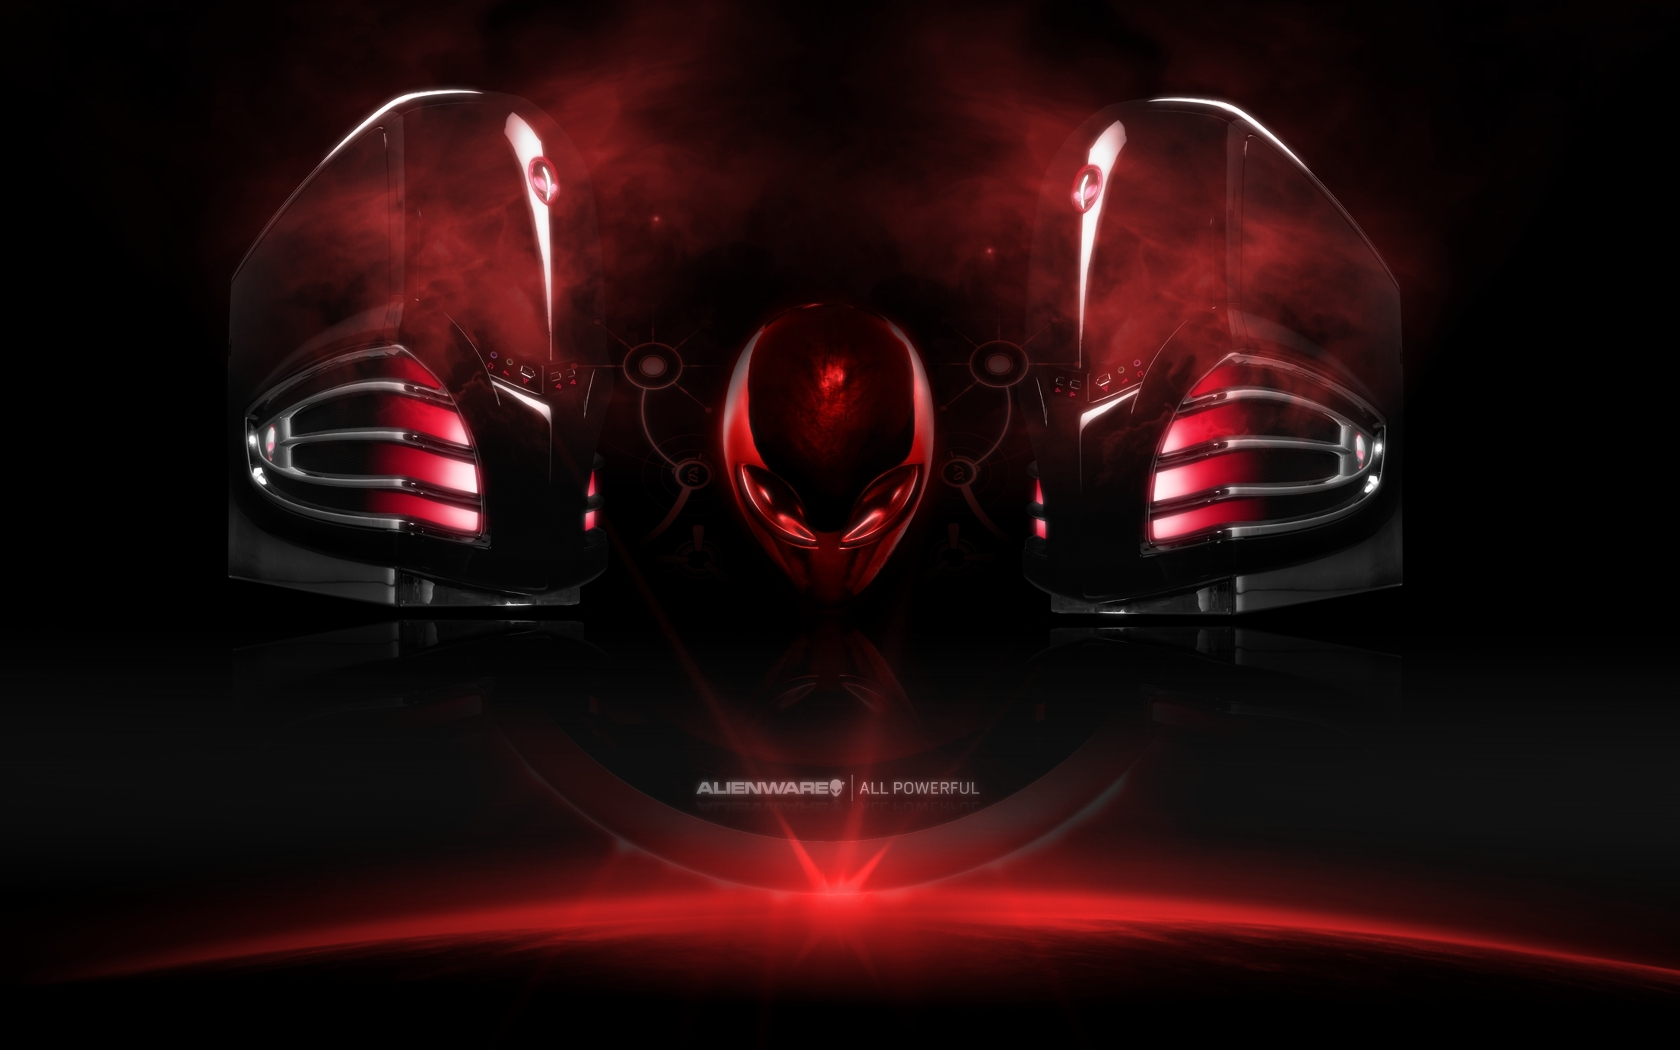 Alienware Wallpaper and Background Image | 1680x1050 | ID:177548 - Wallpaper Abyss